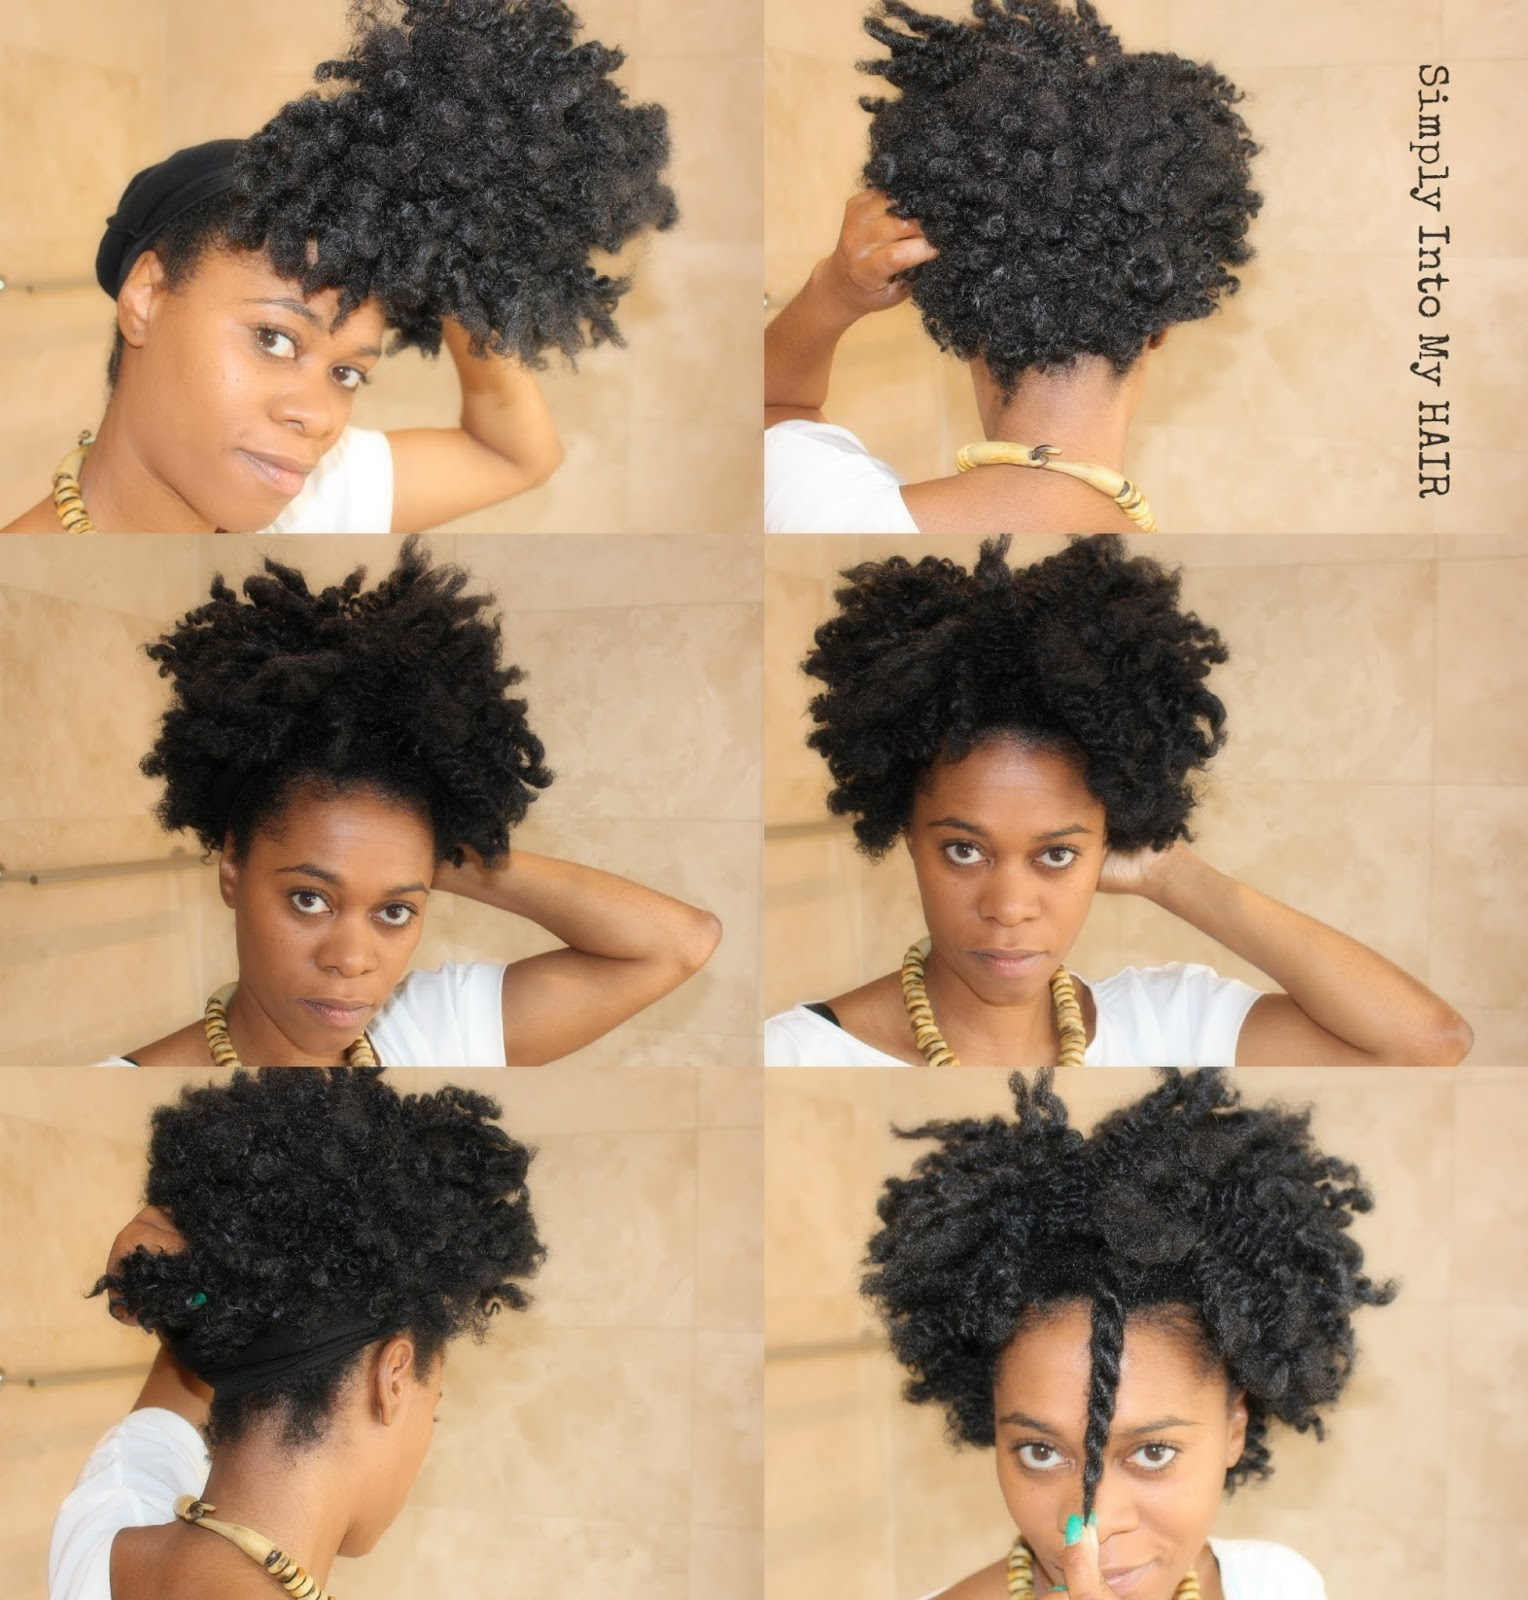 Wig Review Introducing The Big Chop Wig Simply Into My Hair